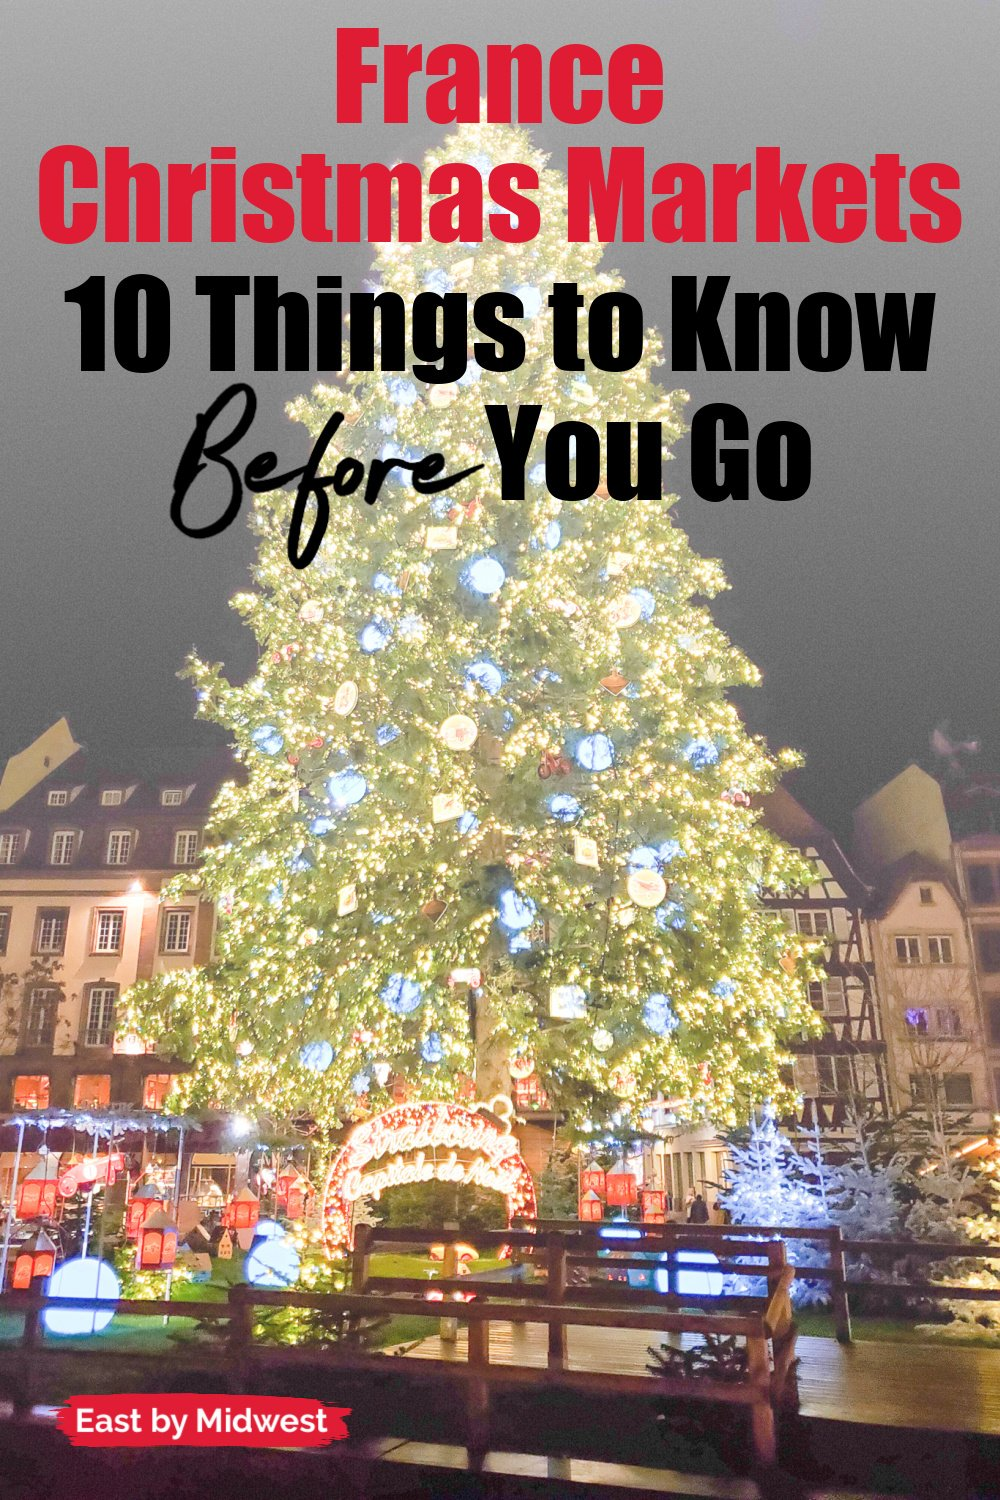 France Christmas Markets: What You Need to Know Before You Go